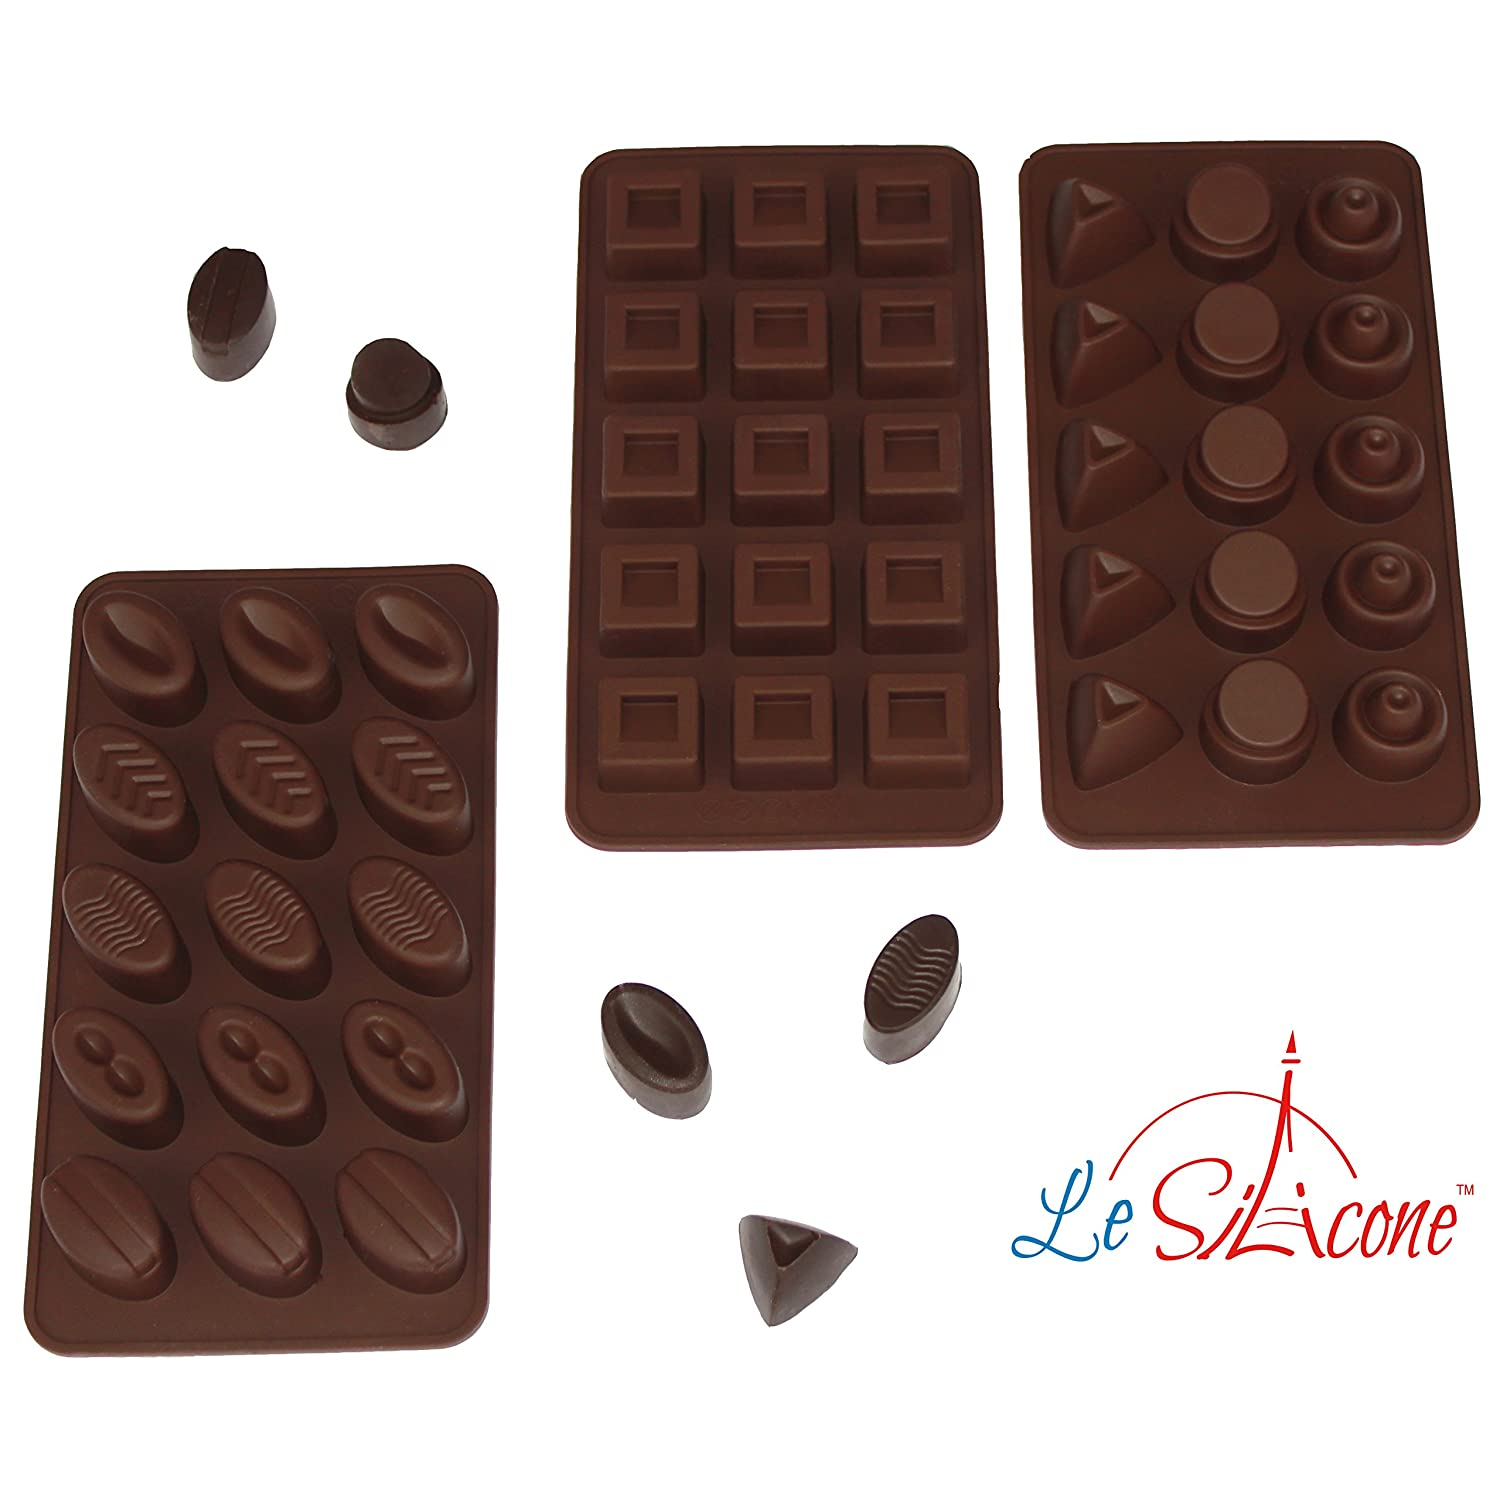 Amazon.com: Le Silicone, Set of 3 Silicone Chocolate and Candy ...